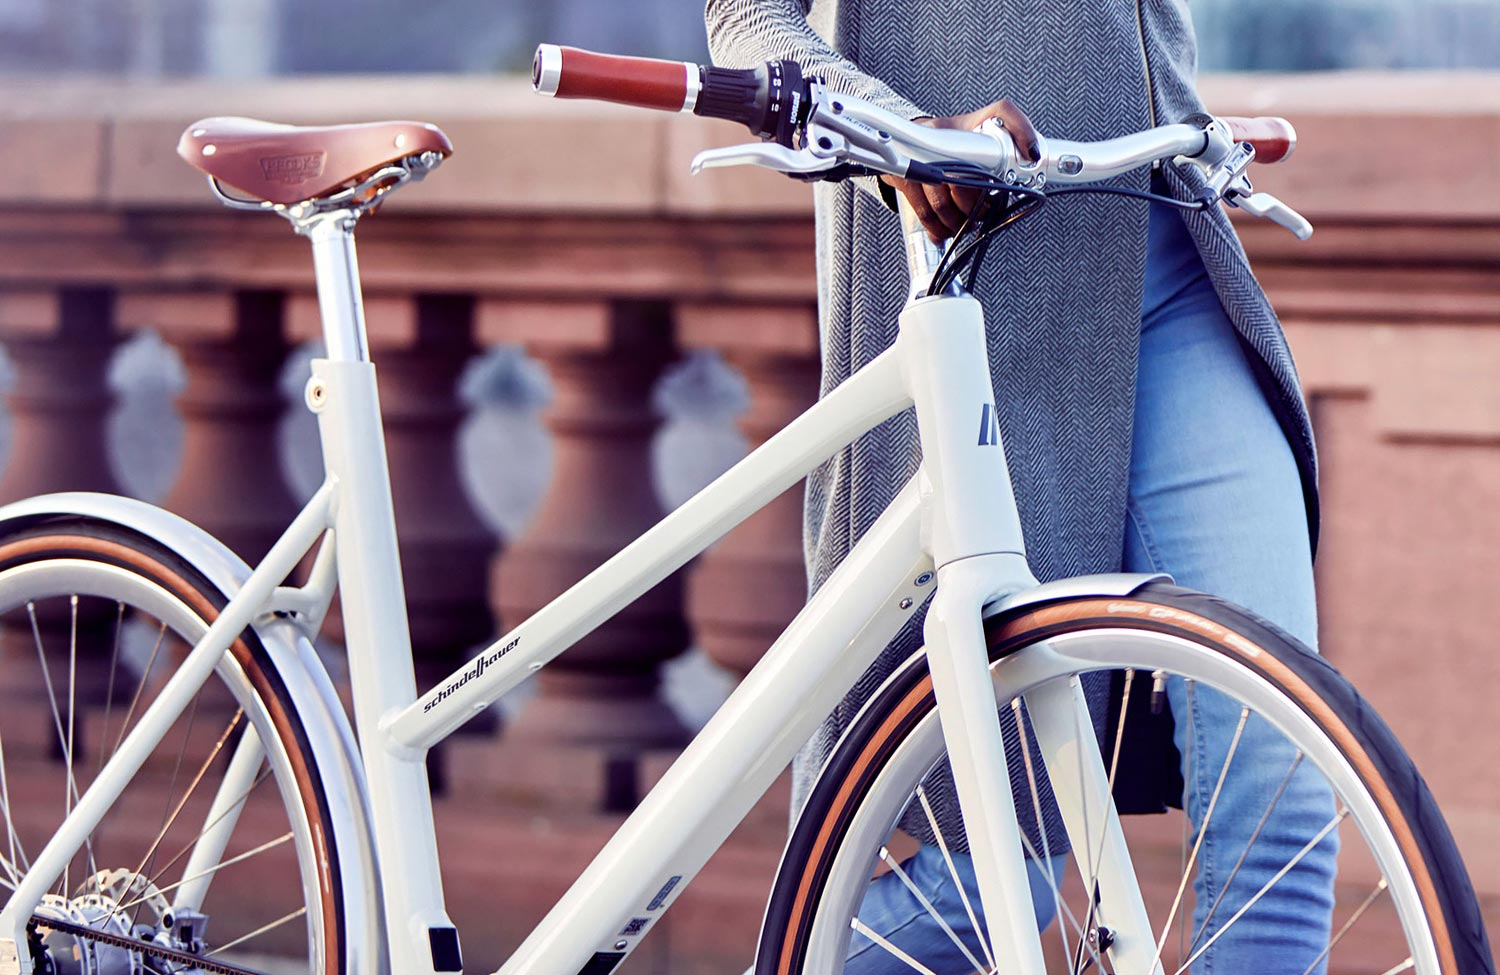 Slim and lightweight e-bikes with comfort frame